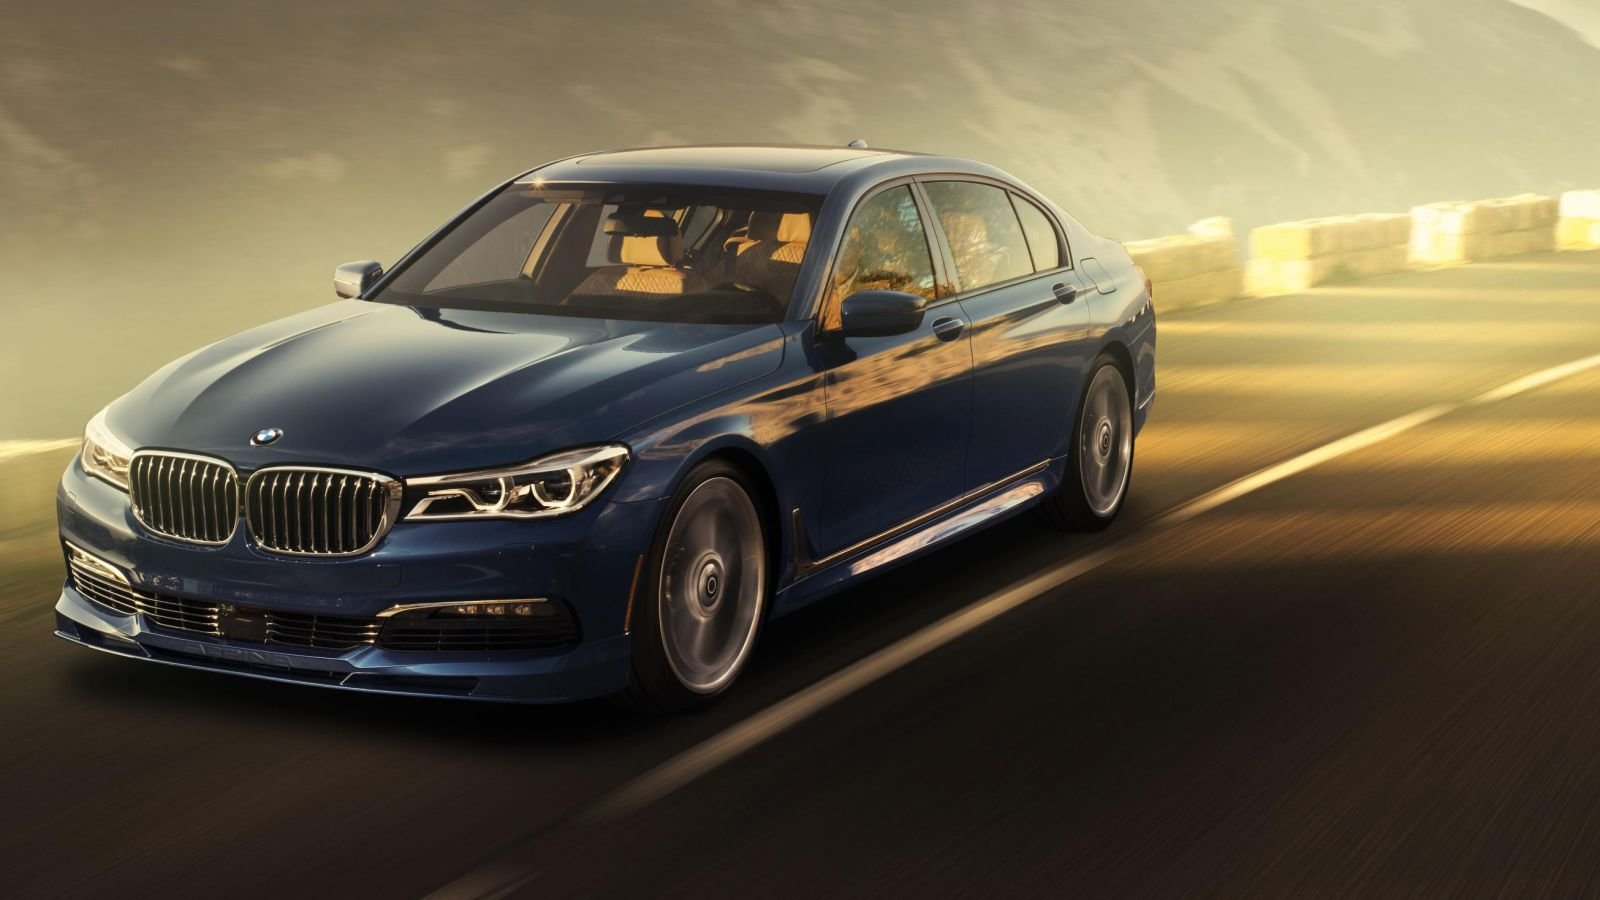 Latest The 2017 Alpina B7 Is Your 600 Horsepower M7 Bmw Doesn T Free Download Original 1024 x 768